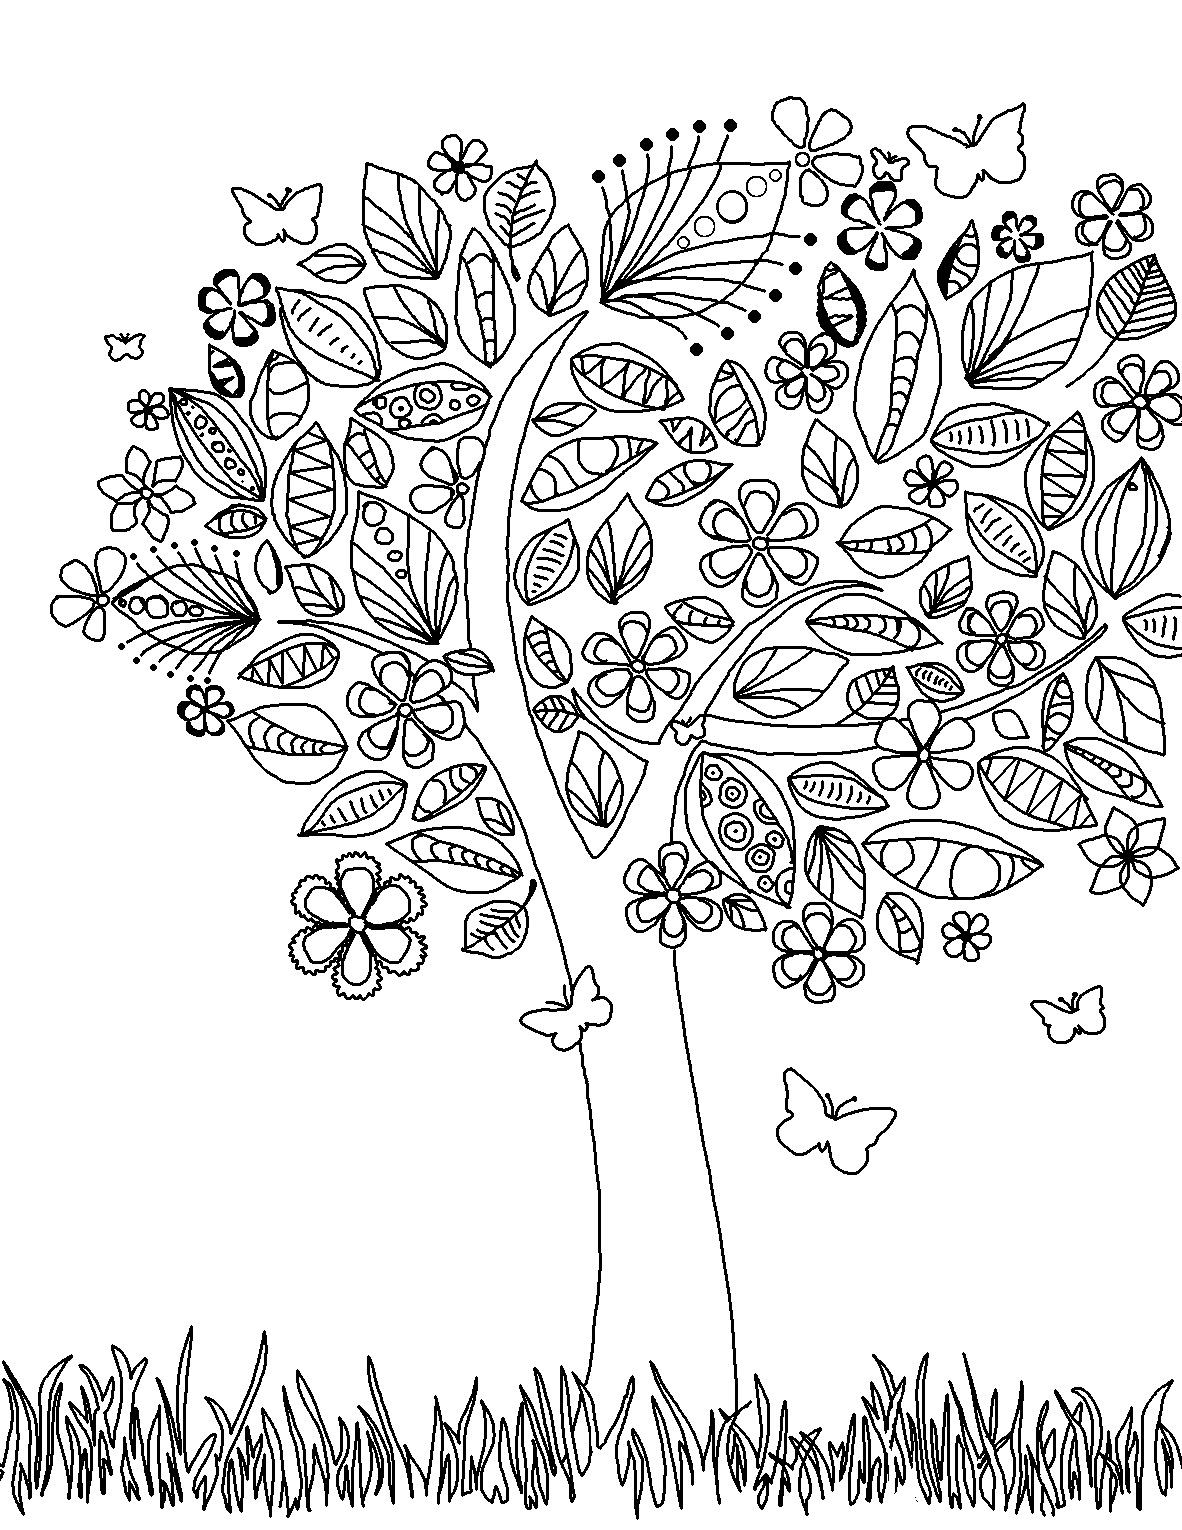 difficult coloring pages for teenagers coloring pages for teenagers difficult at getcoloringscom pages difficult coloring teenagers for